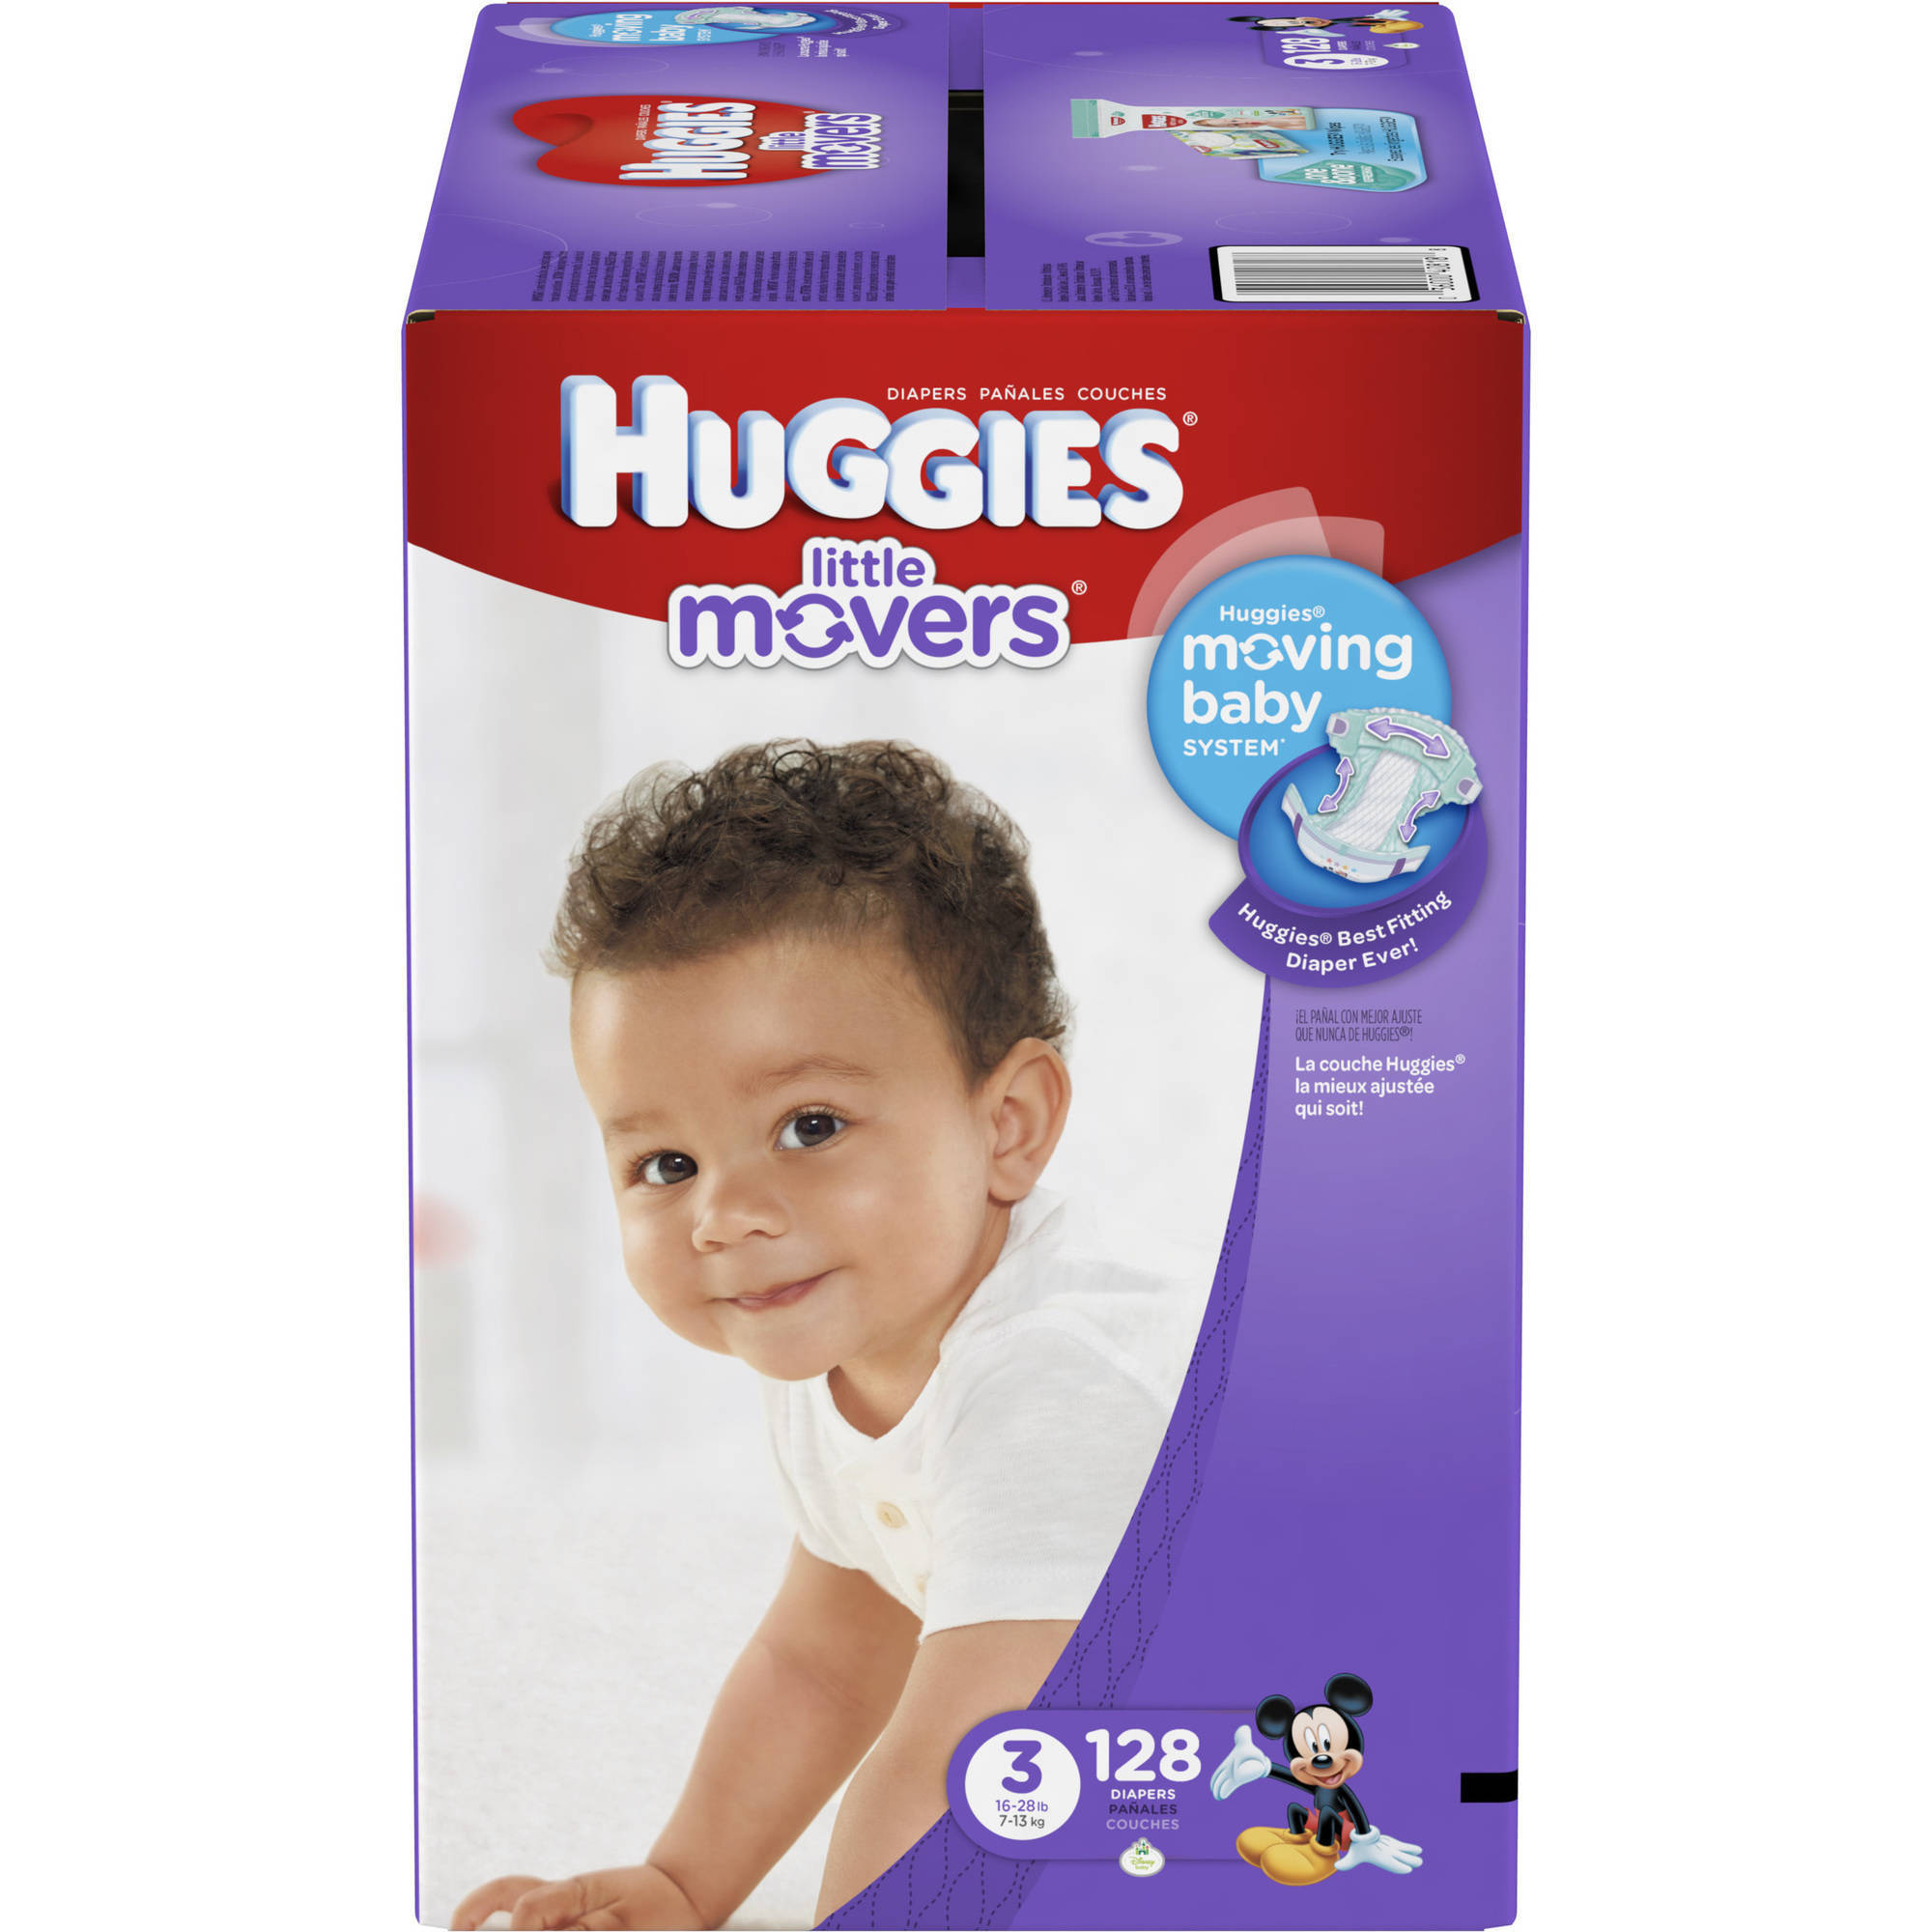 HUGGIES Little Movers Diapers, Size 3, 128 Diapers - Walmart.com